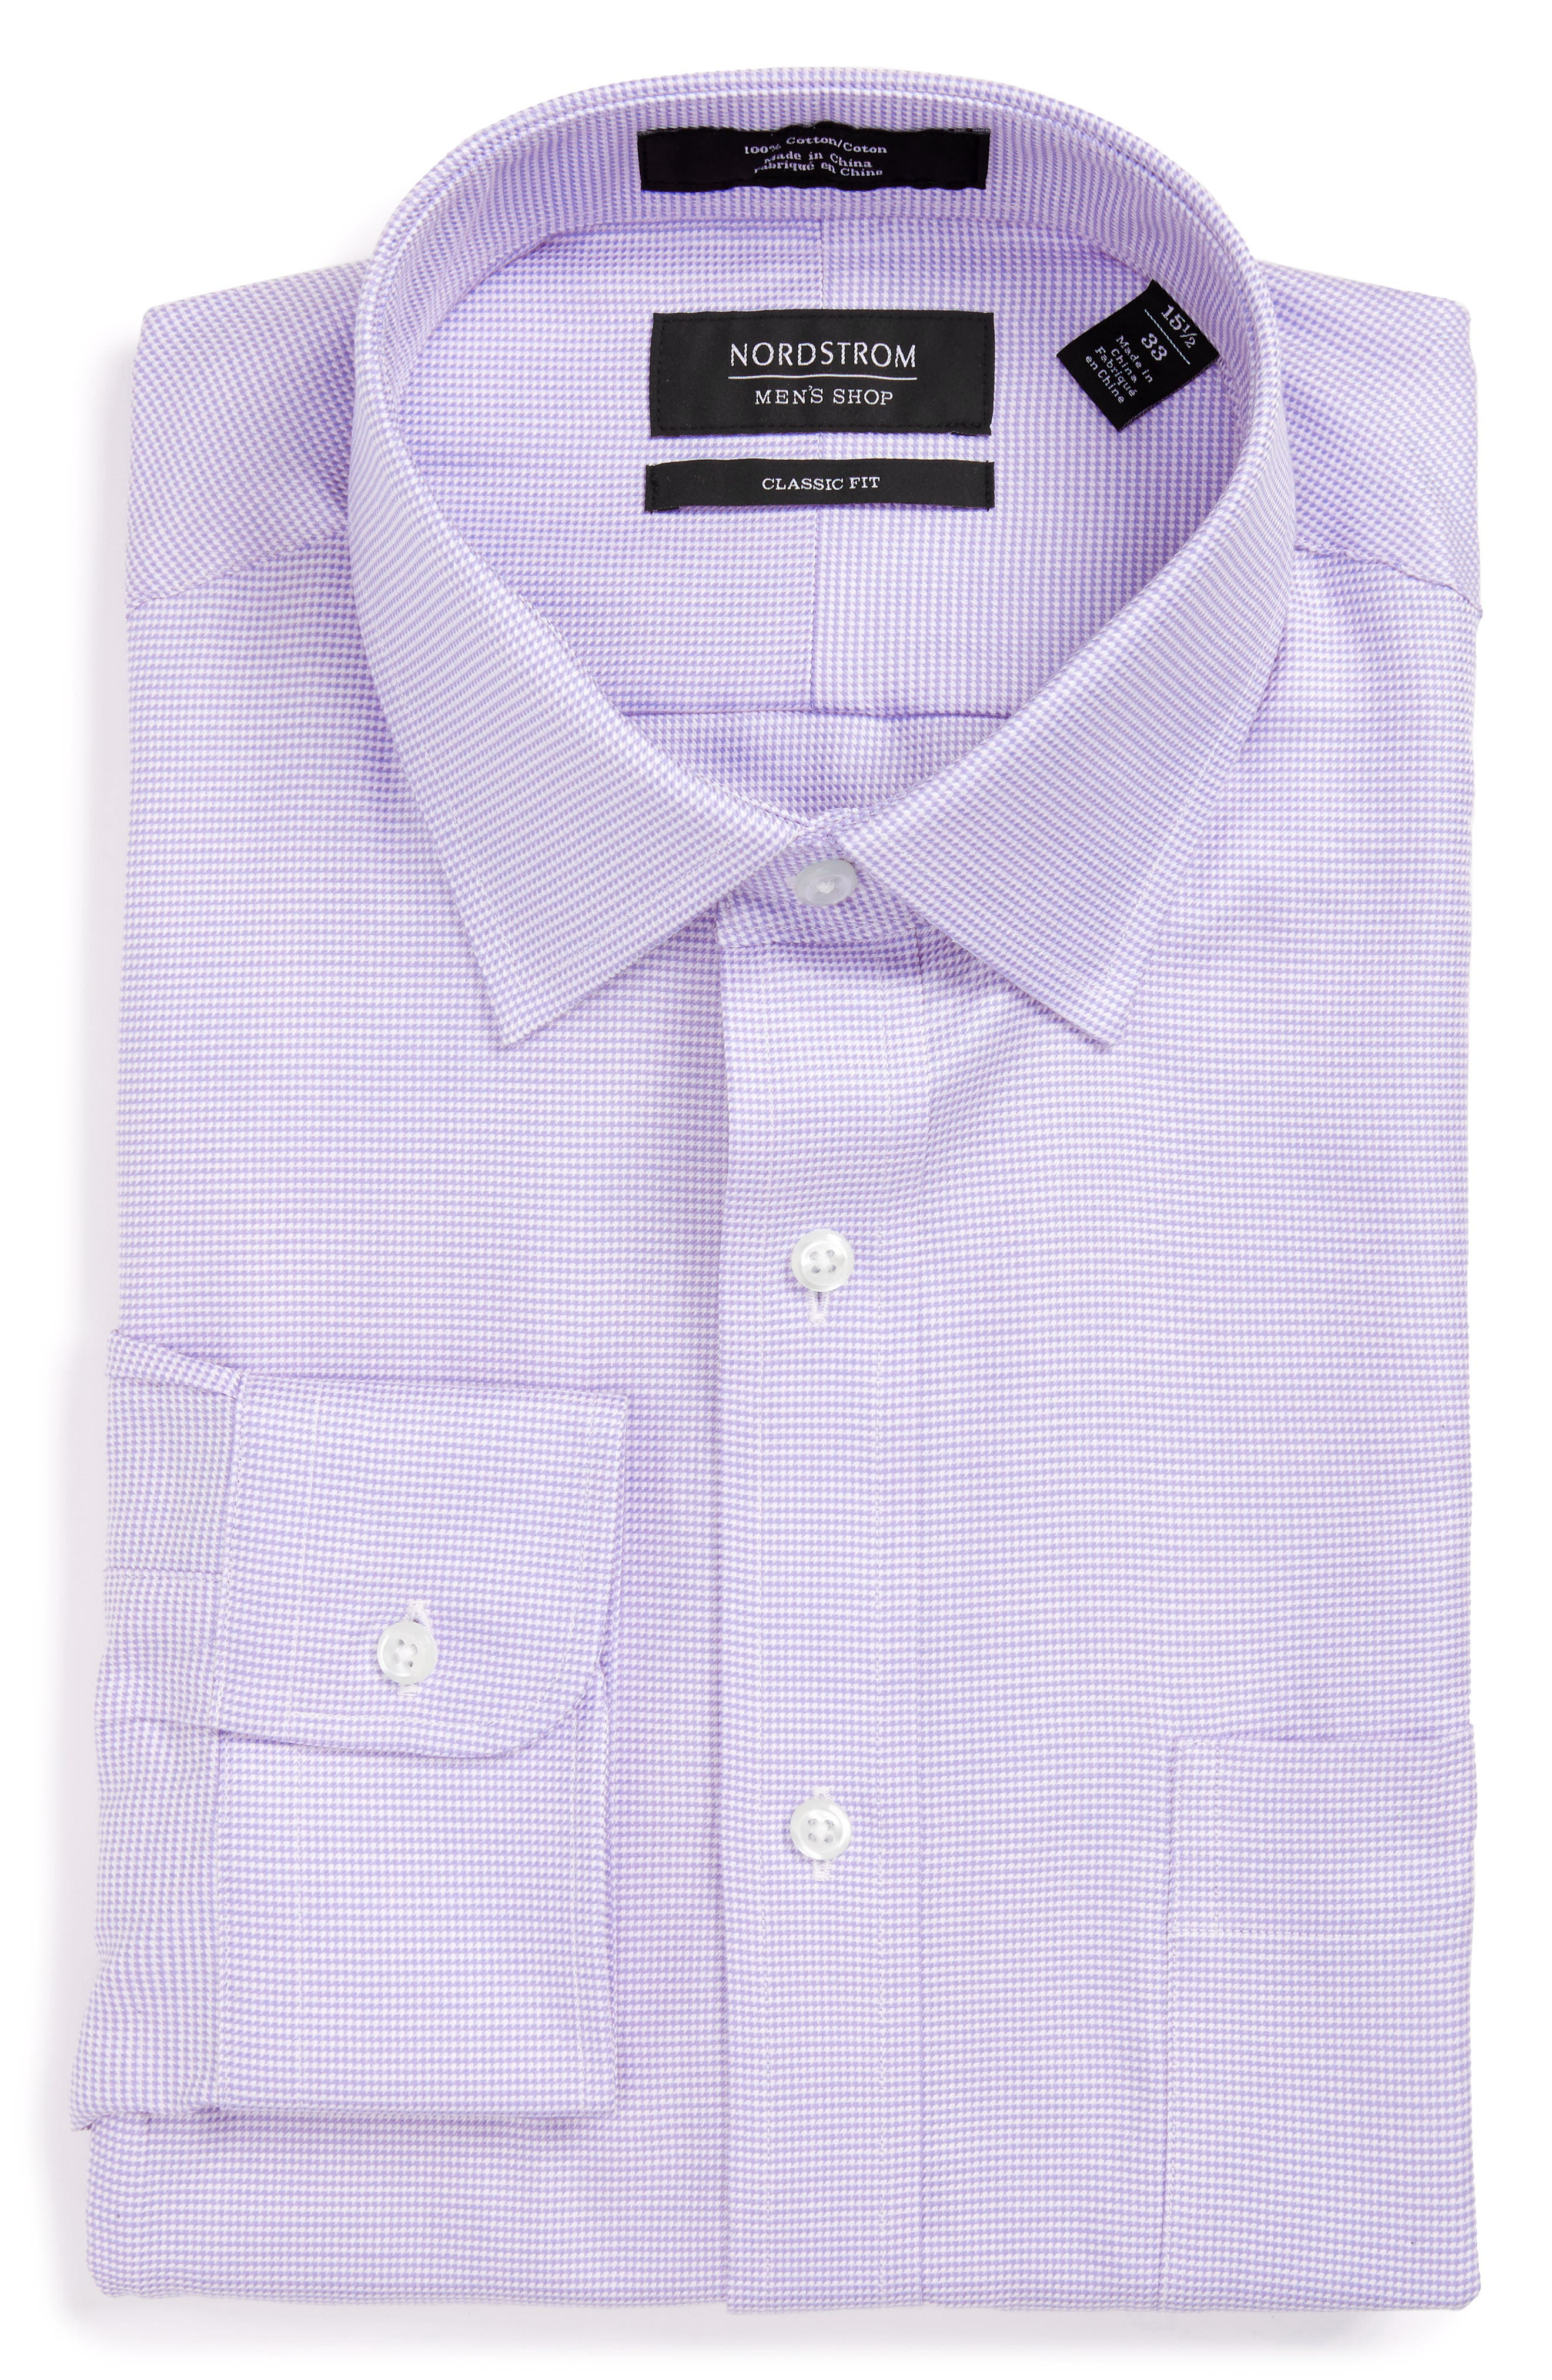 Main Image - Nordstrom Men's Shop Classic Fit Microgrid Dress Shirt